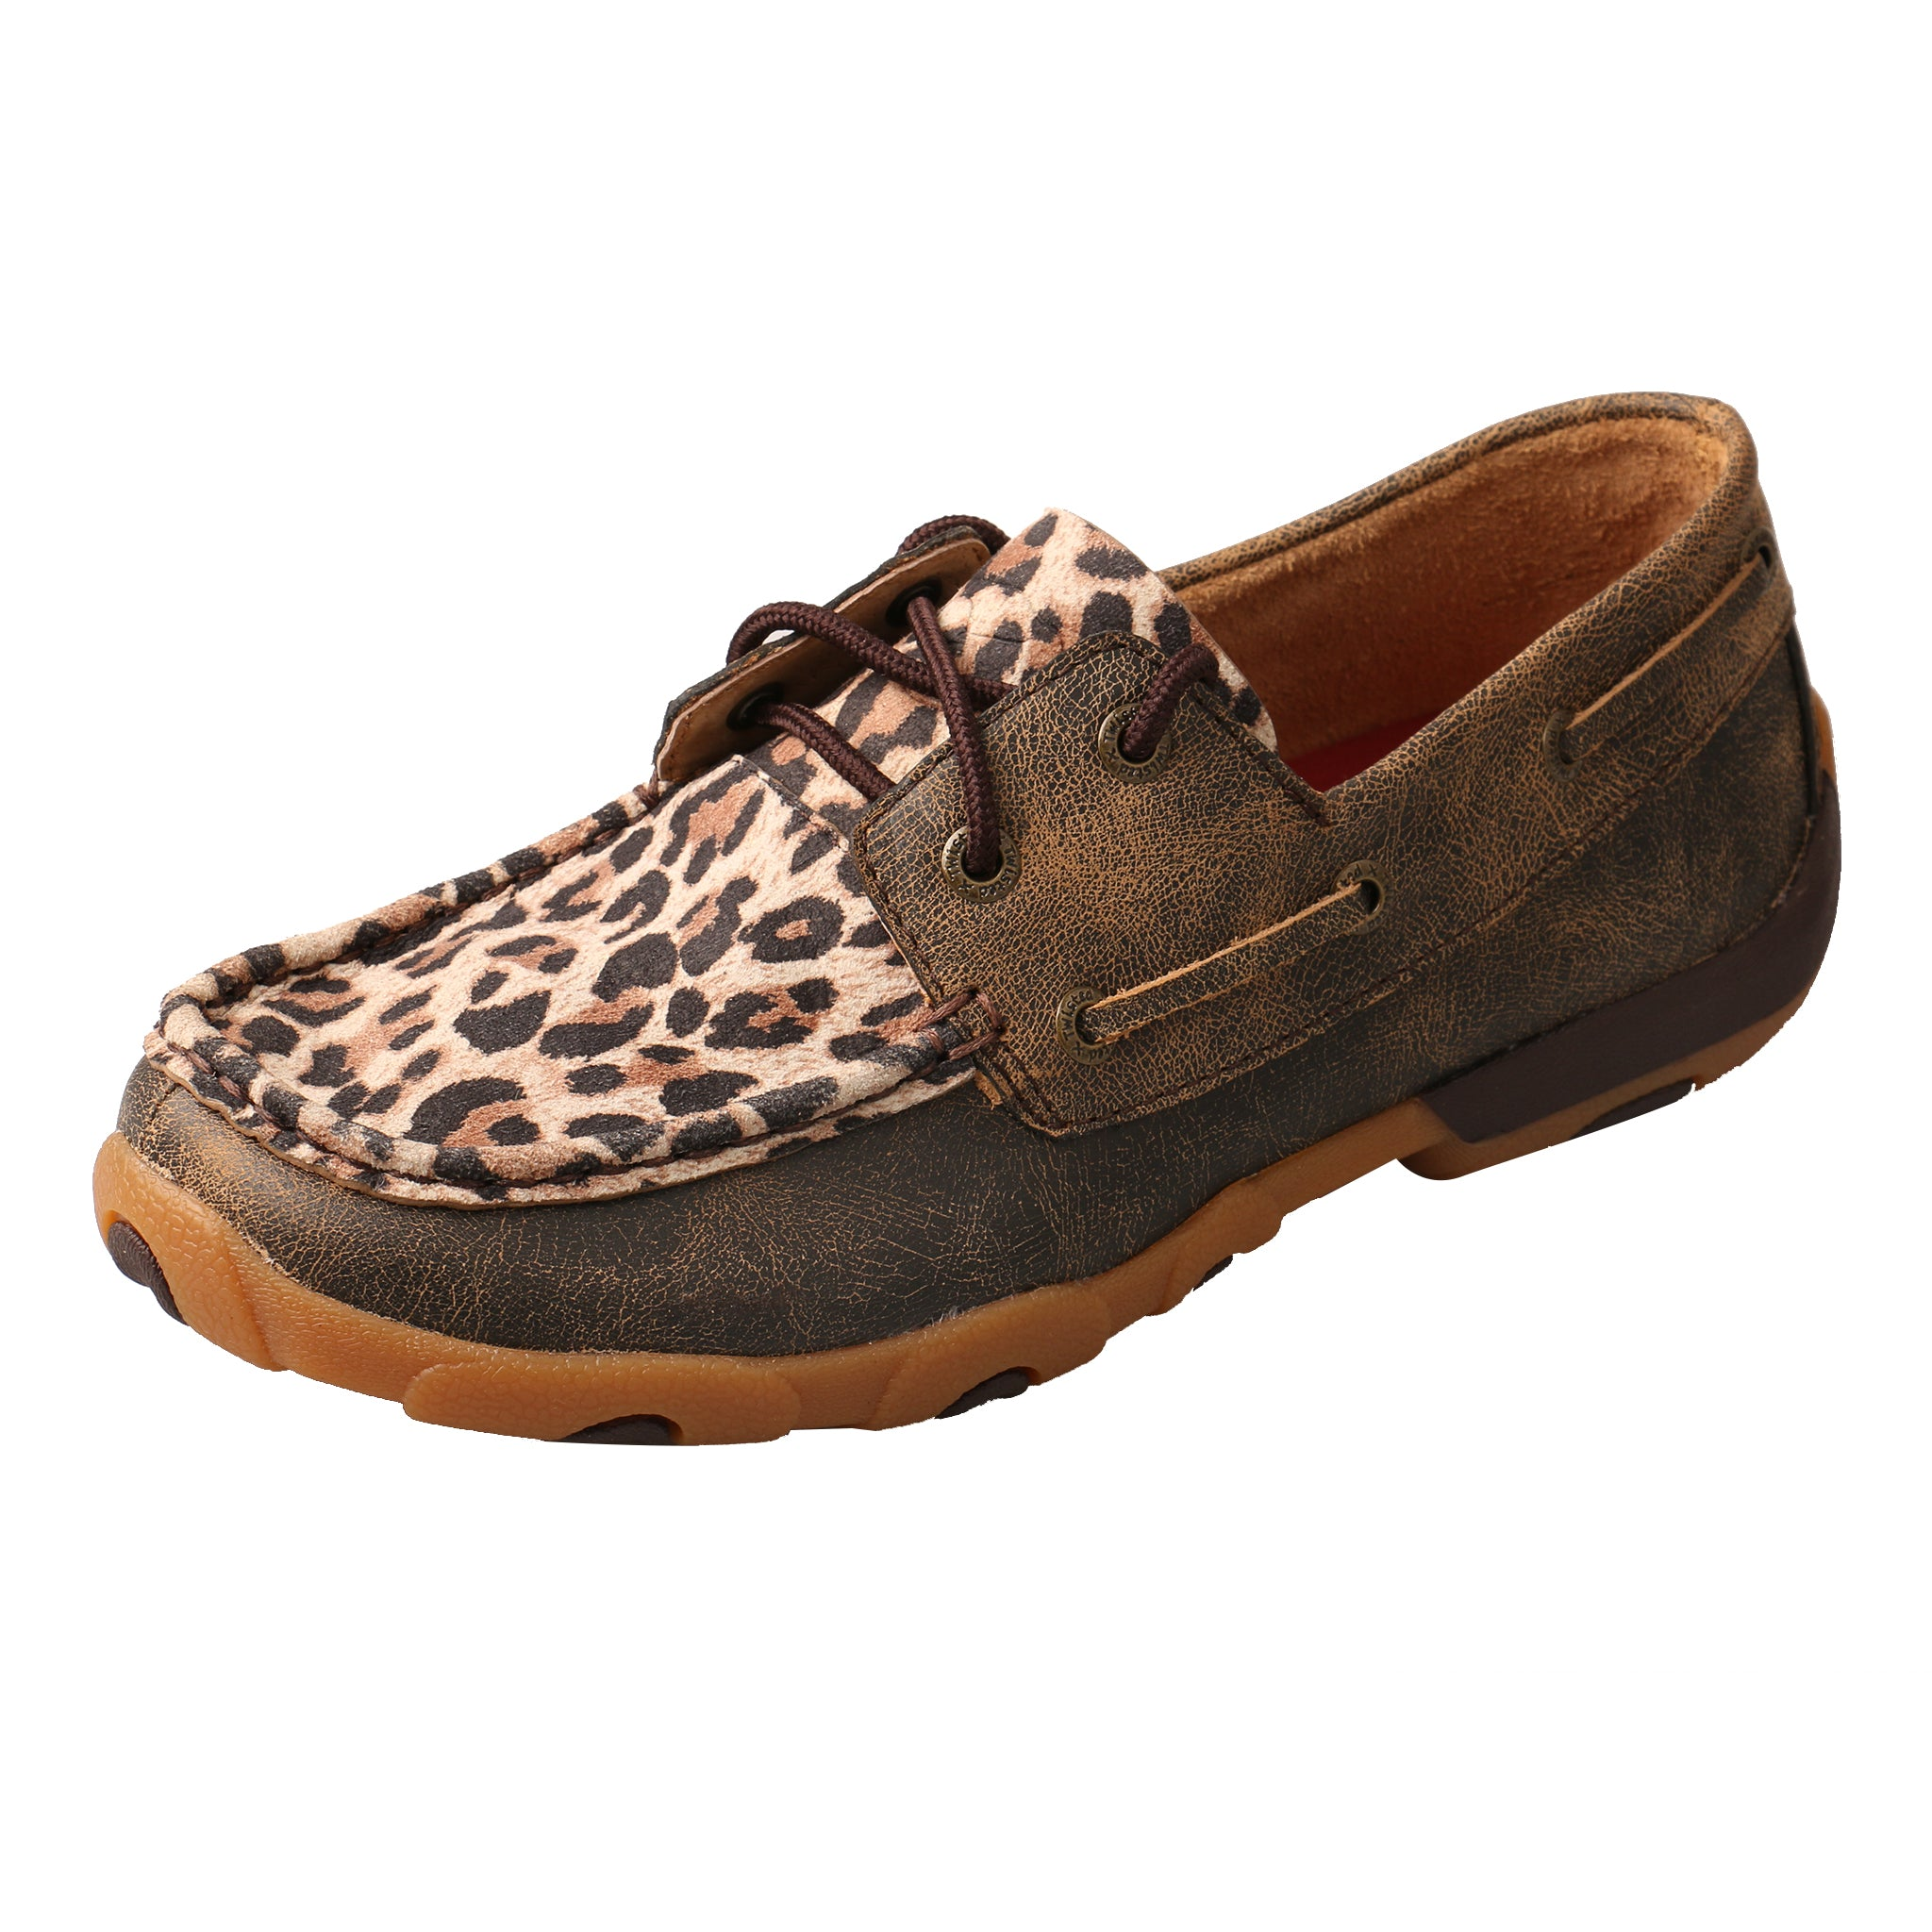 'Twisted X' WDM0057 - Driving Moccasin - Brown / Leopard